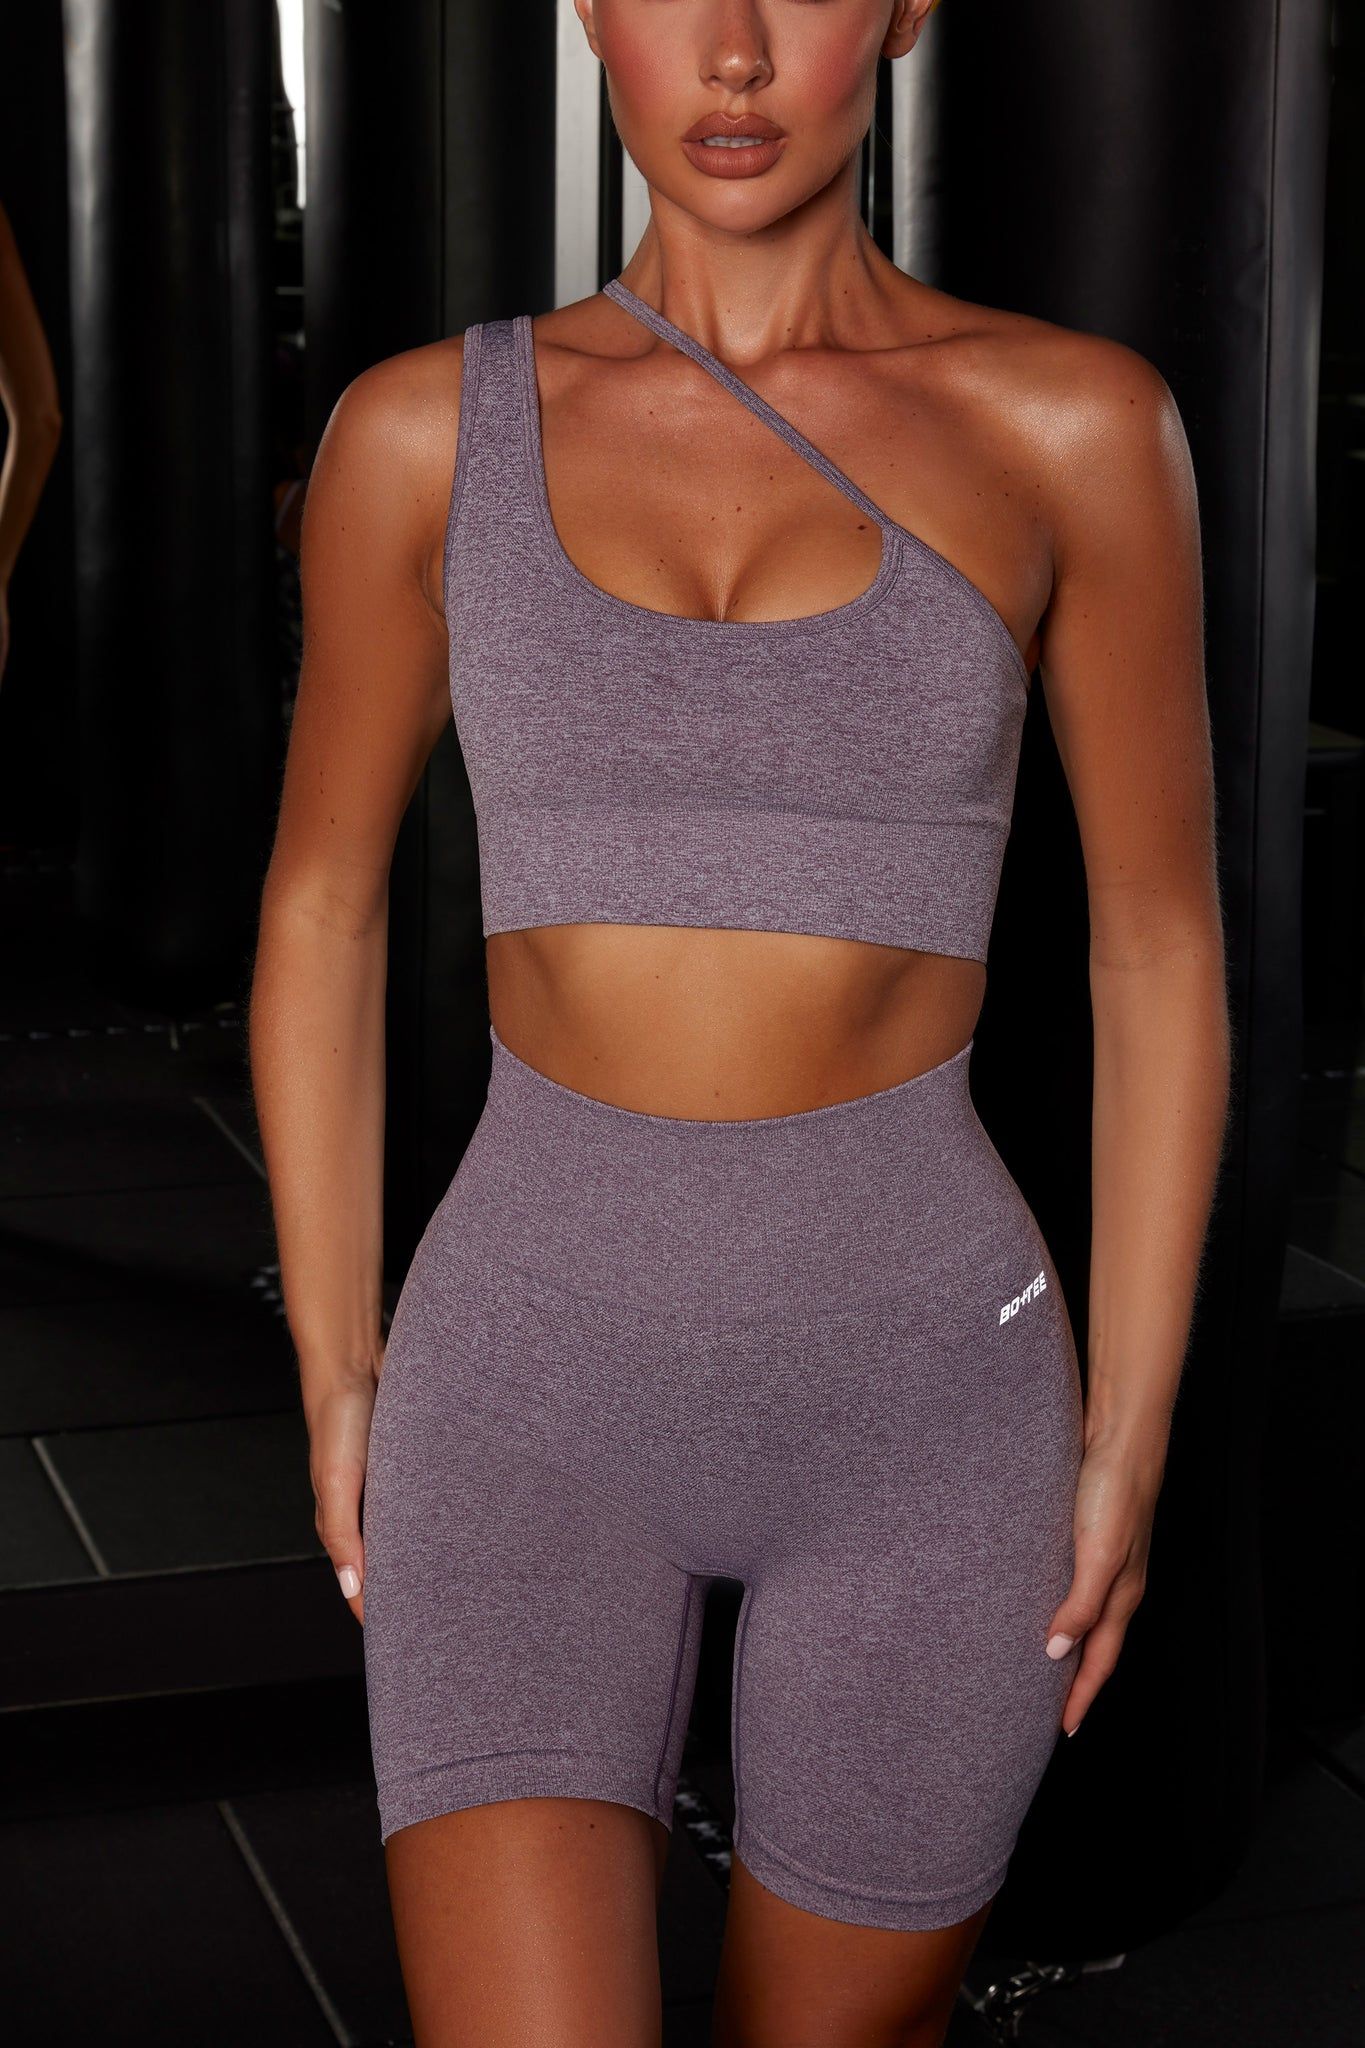 Plain purple crop top with asymmetric strap. Image 4 of 6.